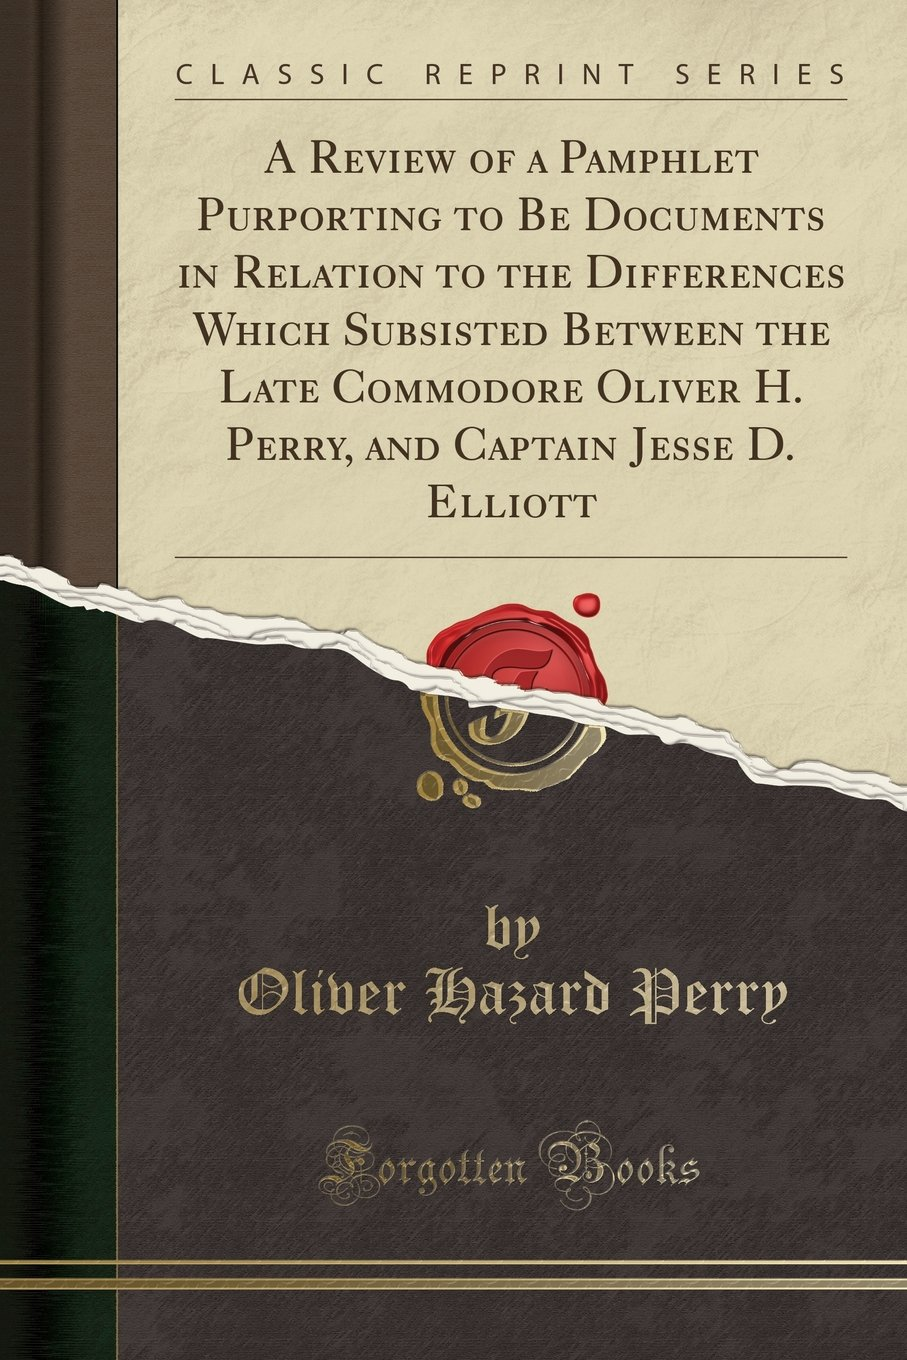 A Review of a Pamphlet Purporting to Be Documents in Relation to the Differences Which Subsisted Between the Late Commodore Oliver H. Perry, and Captain Jesse D. Elliott (Classic Reprint) PDF